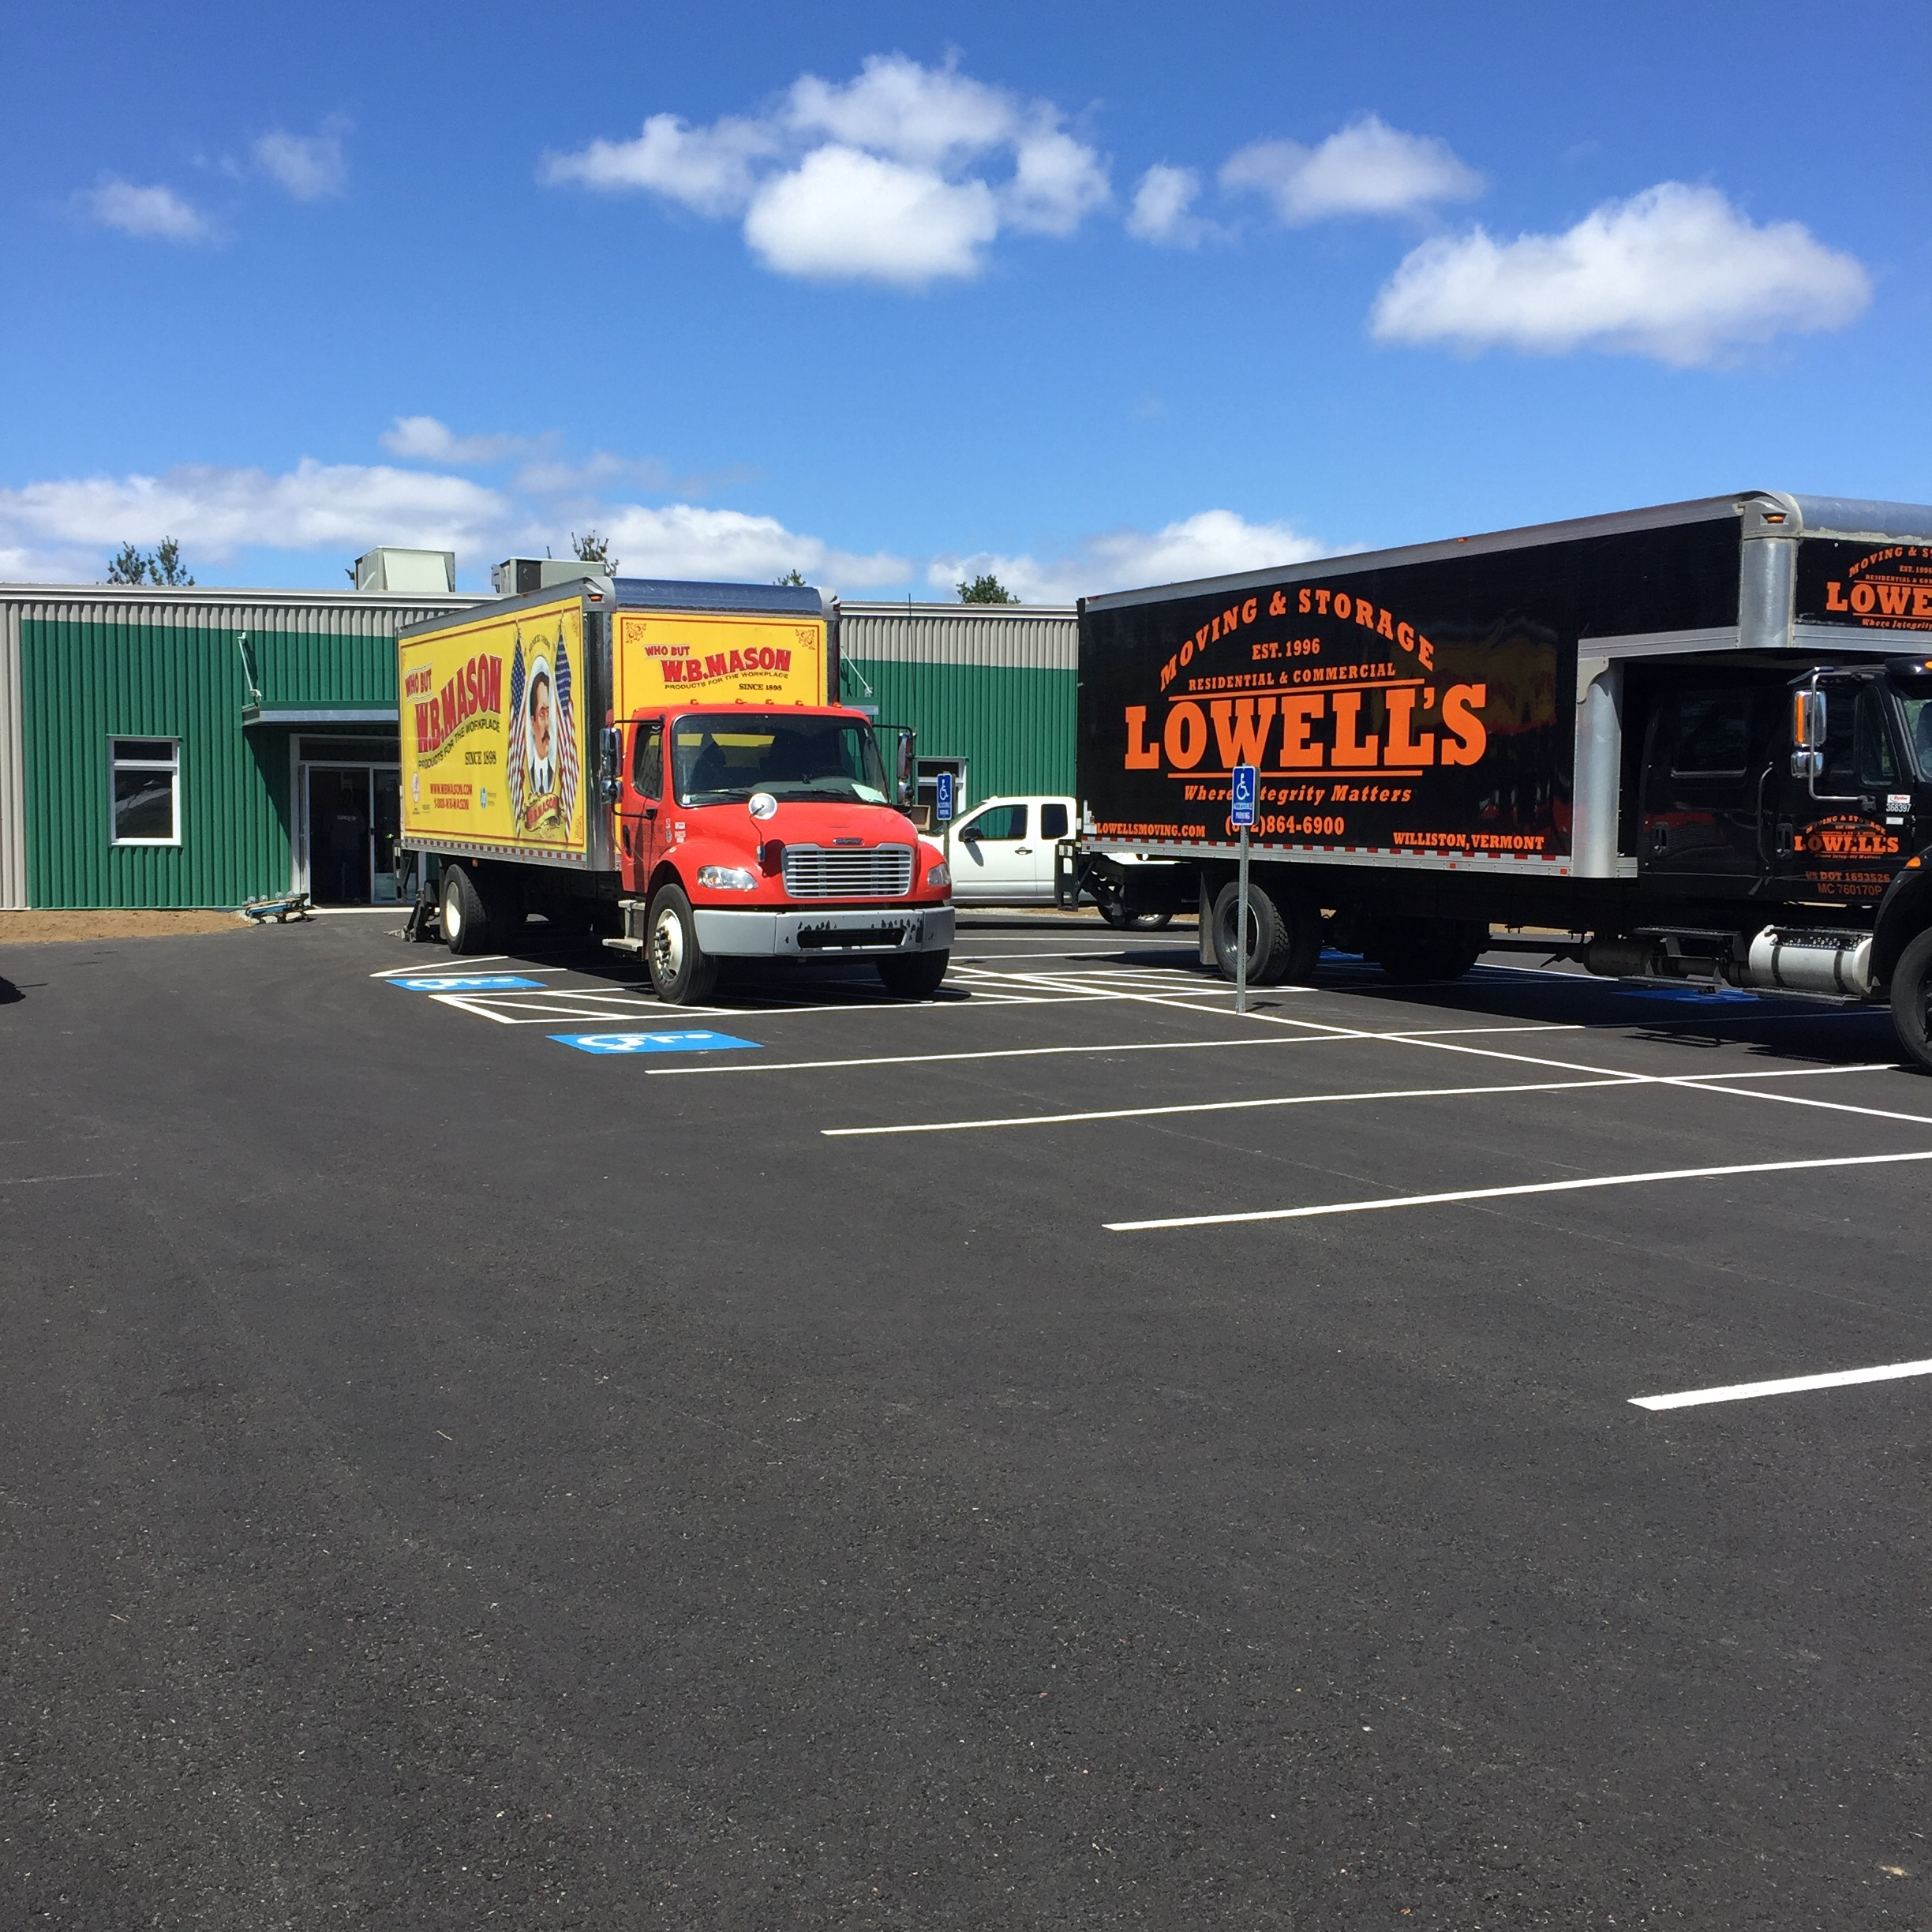 May 11th was a big day for us. After 20 years at our previous address, we moved to our new location at 93 James Road in Morrisville.